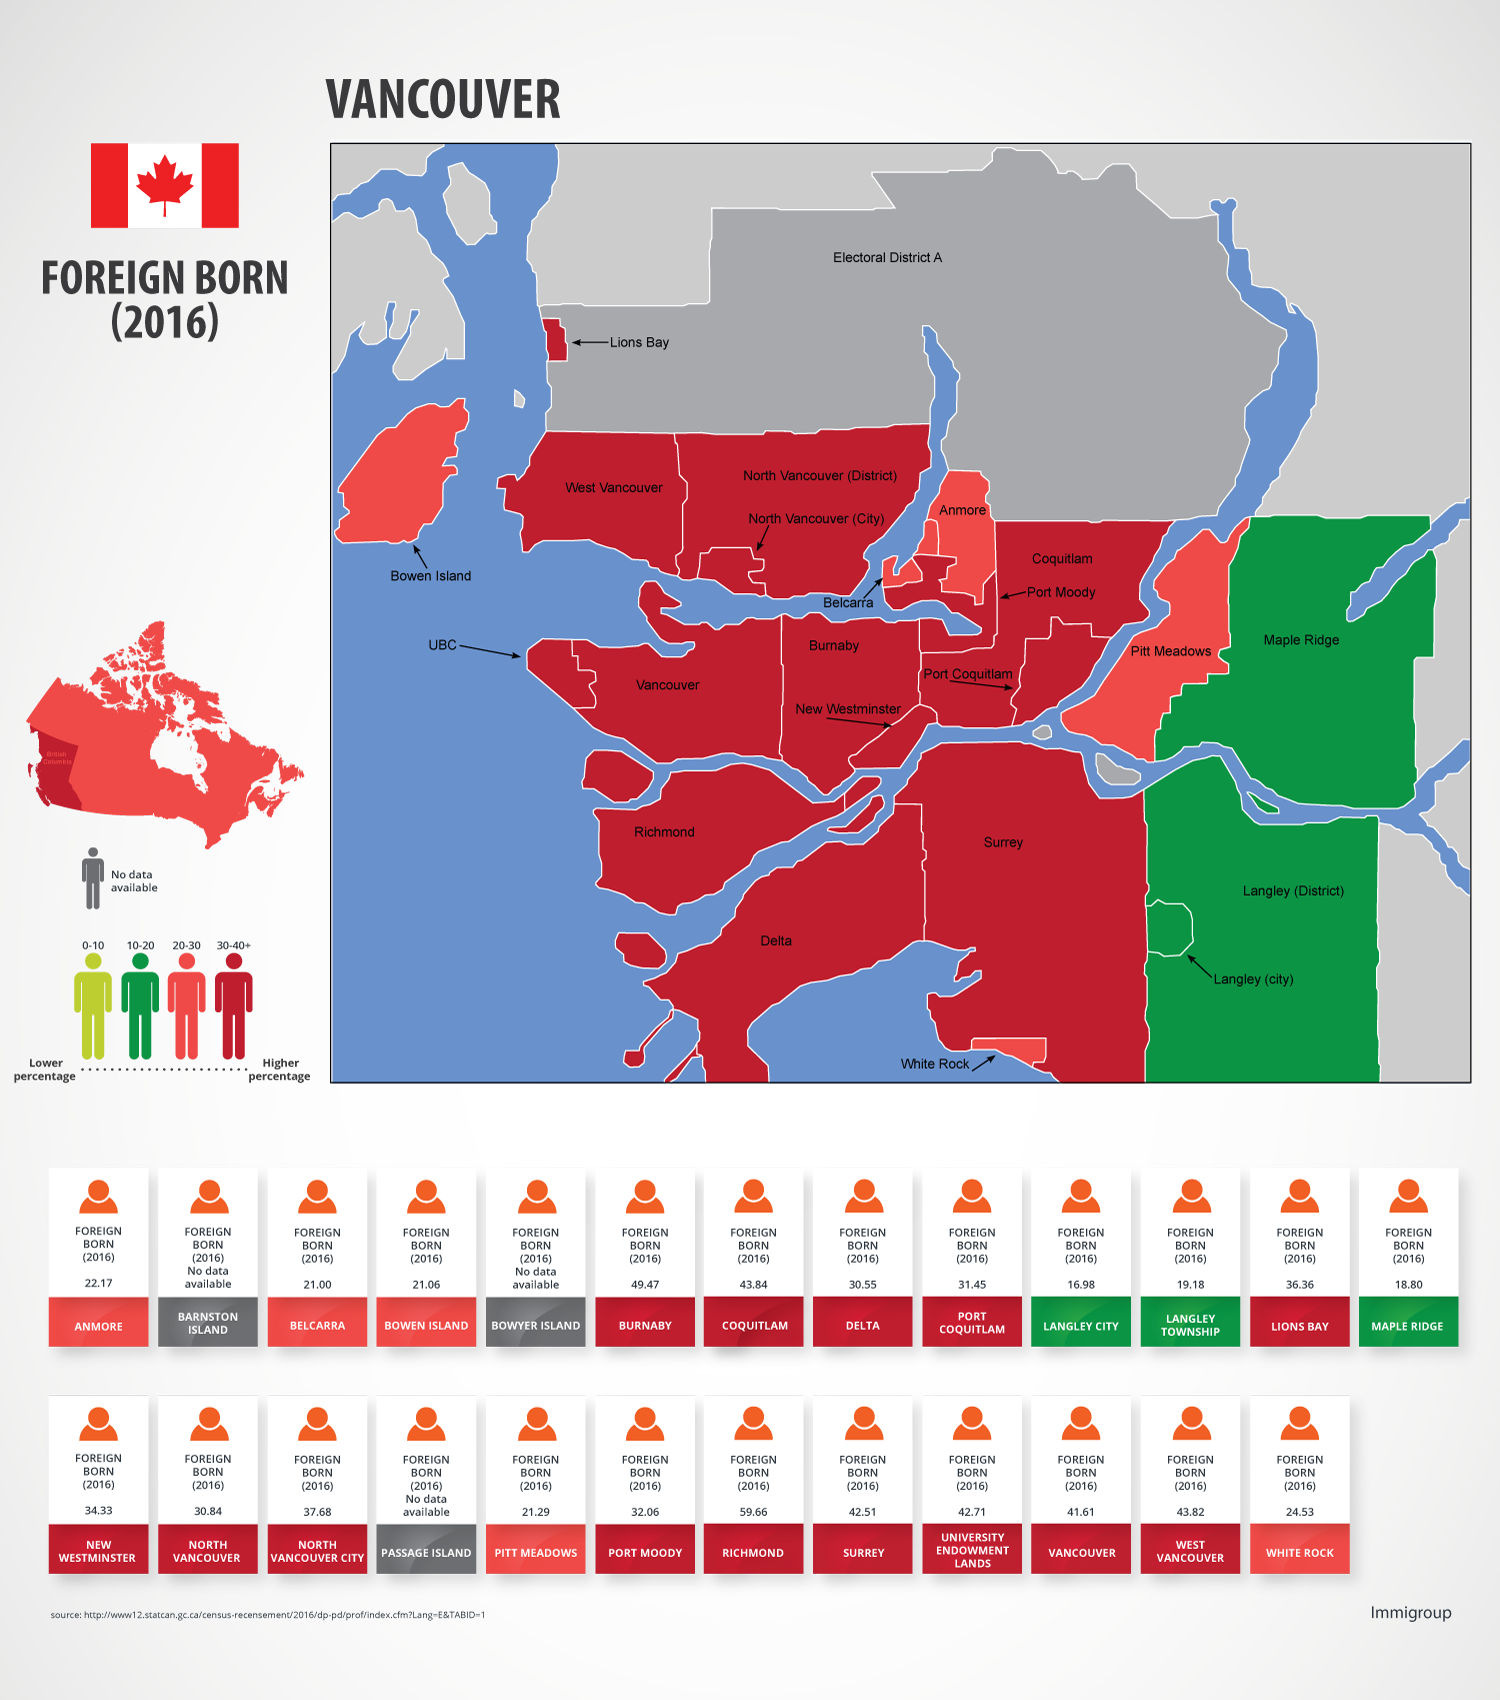 The Most Dangerous Cities in Canada - Immigroup - We Are